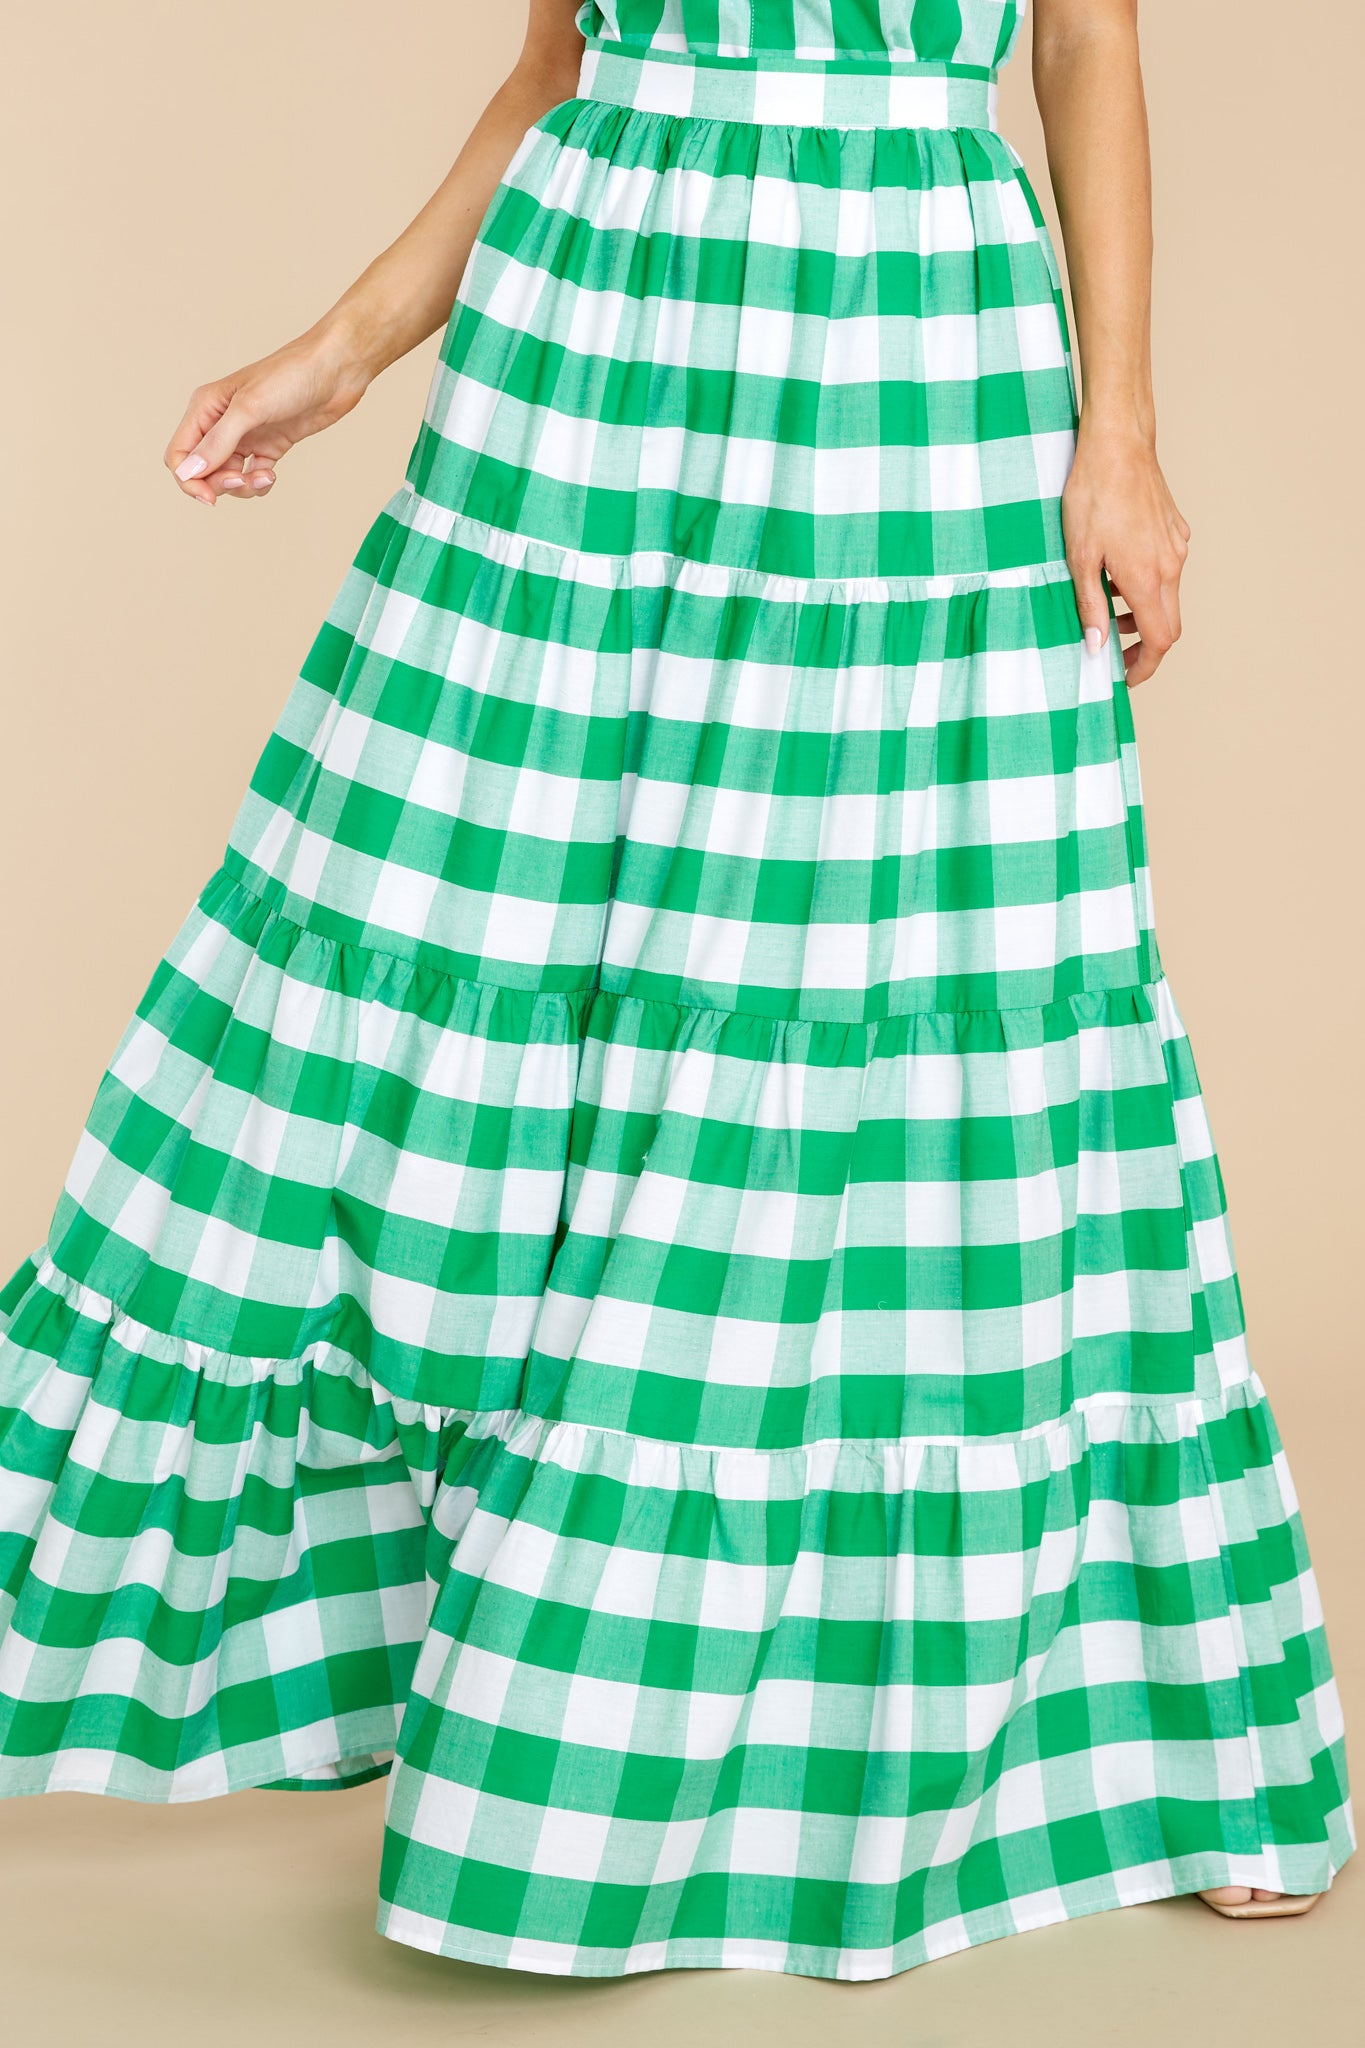 Vintage Skirts | Retro, Pencil, Swing, Boho Aura Too Much To Say Green Gingham Skirt $48.00 AT vintagedancer.com